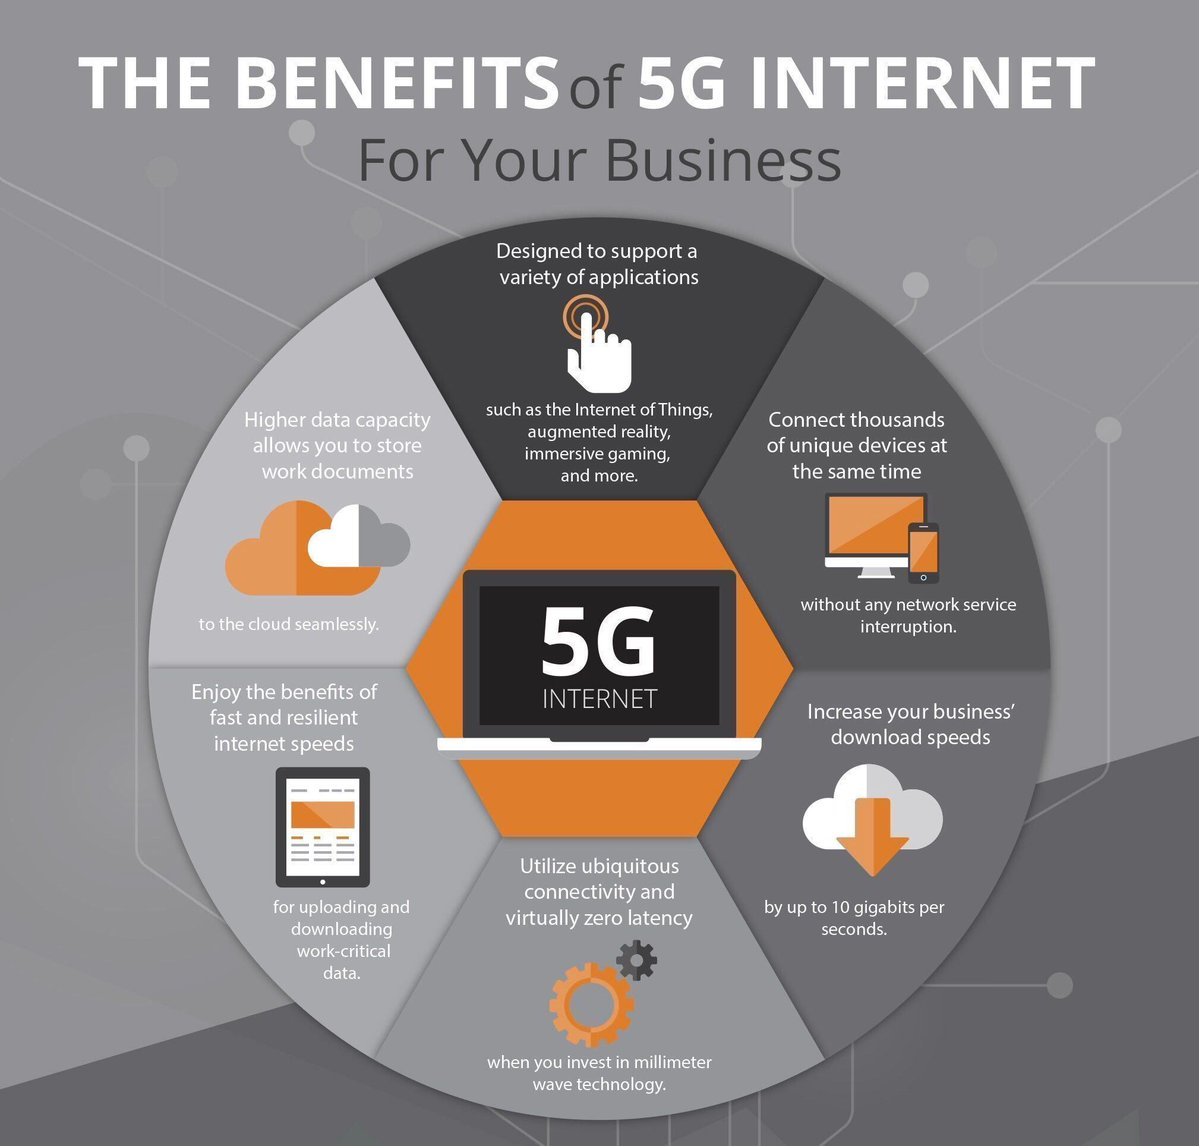 What are the #business benefits of #5G? #CyberSecurity #infosec #mobile #Wearables #SmartCity #BigData #IoT #IIoT #smartgrids #DigitalMarketing #GrowthHacking #Hacks #Google #googledrive #Cloud #contentmarketing #OnlineMarketing #ContentMarketing #Productivity #storage<br>http://pic.twitter.com/aikz4R31Ma